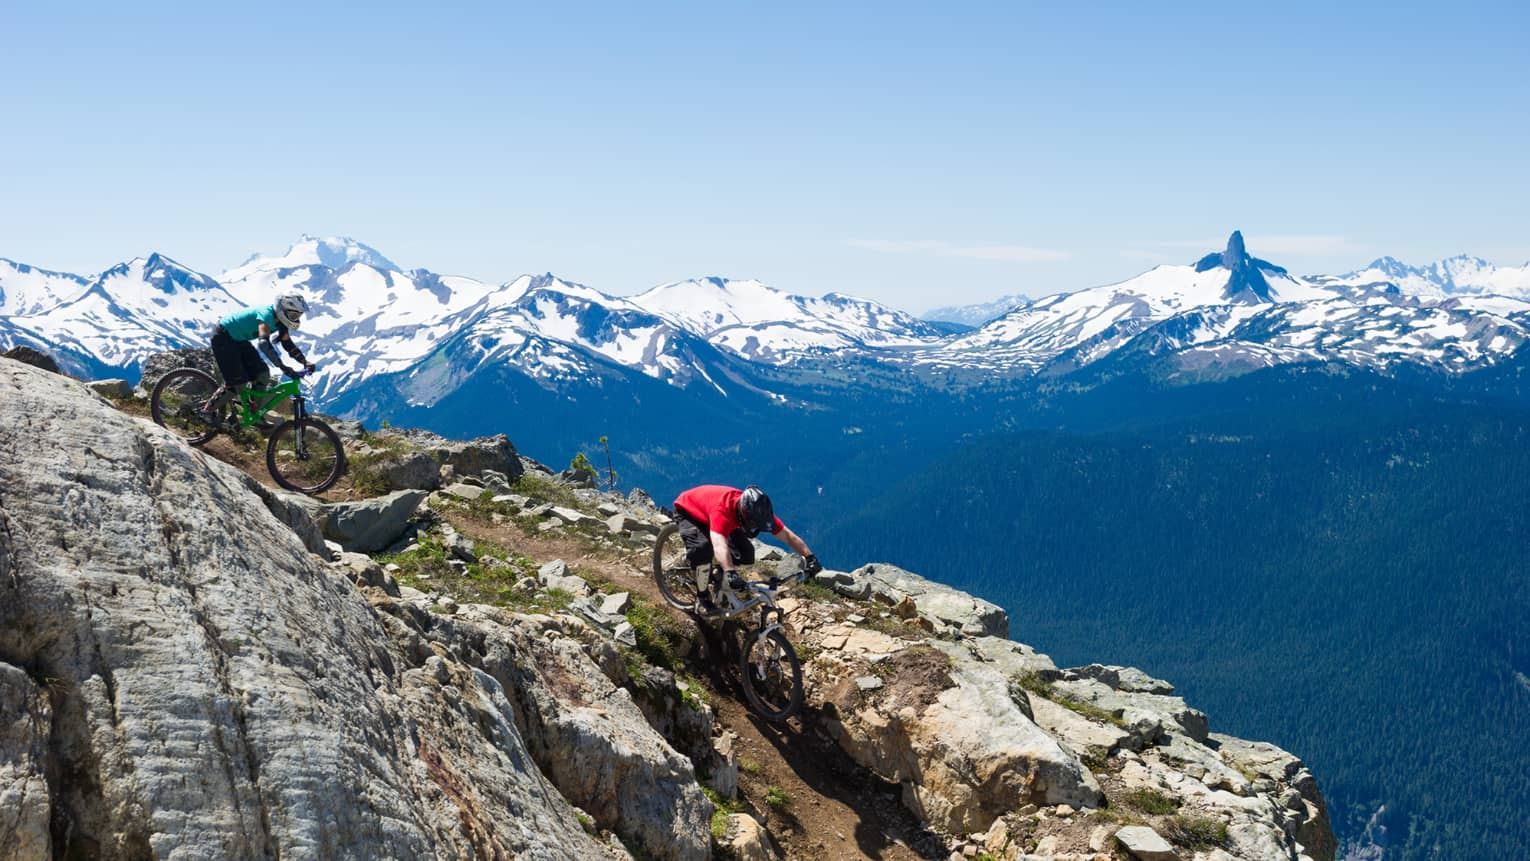 Two people on mountain bikes cycle down rocky mountain near peak, snow caps in background